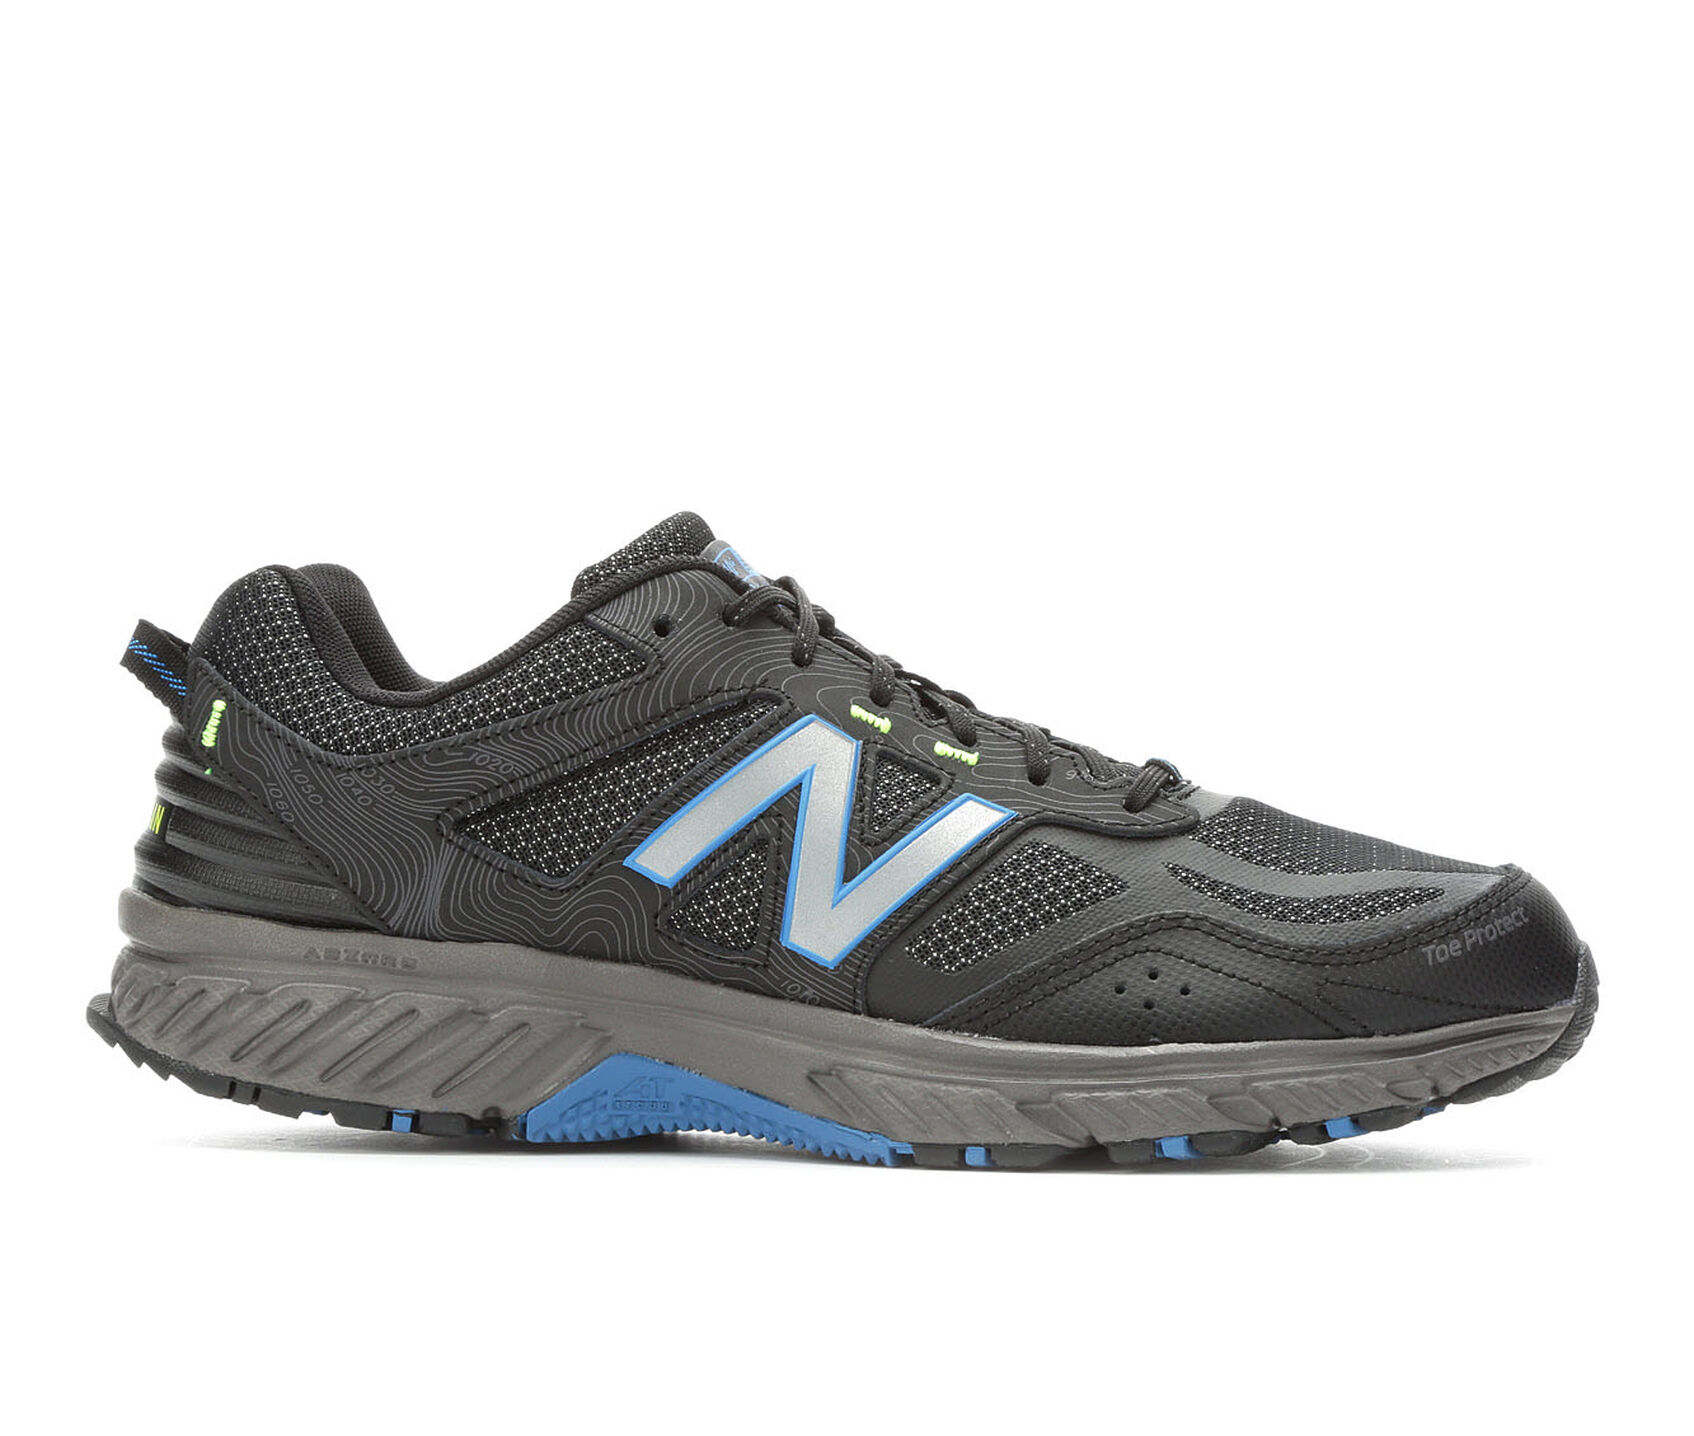 205f7ca5a6 Men's New Balance MT510 Trail Running Shoes | Shoe Carnival